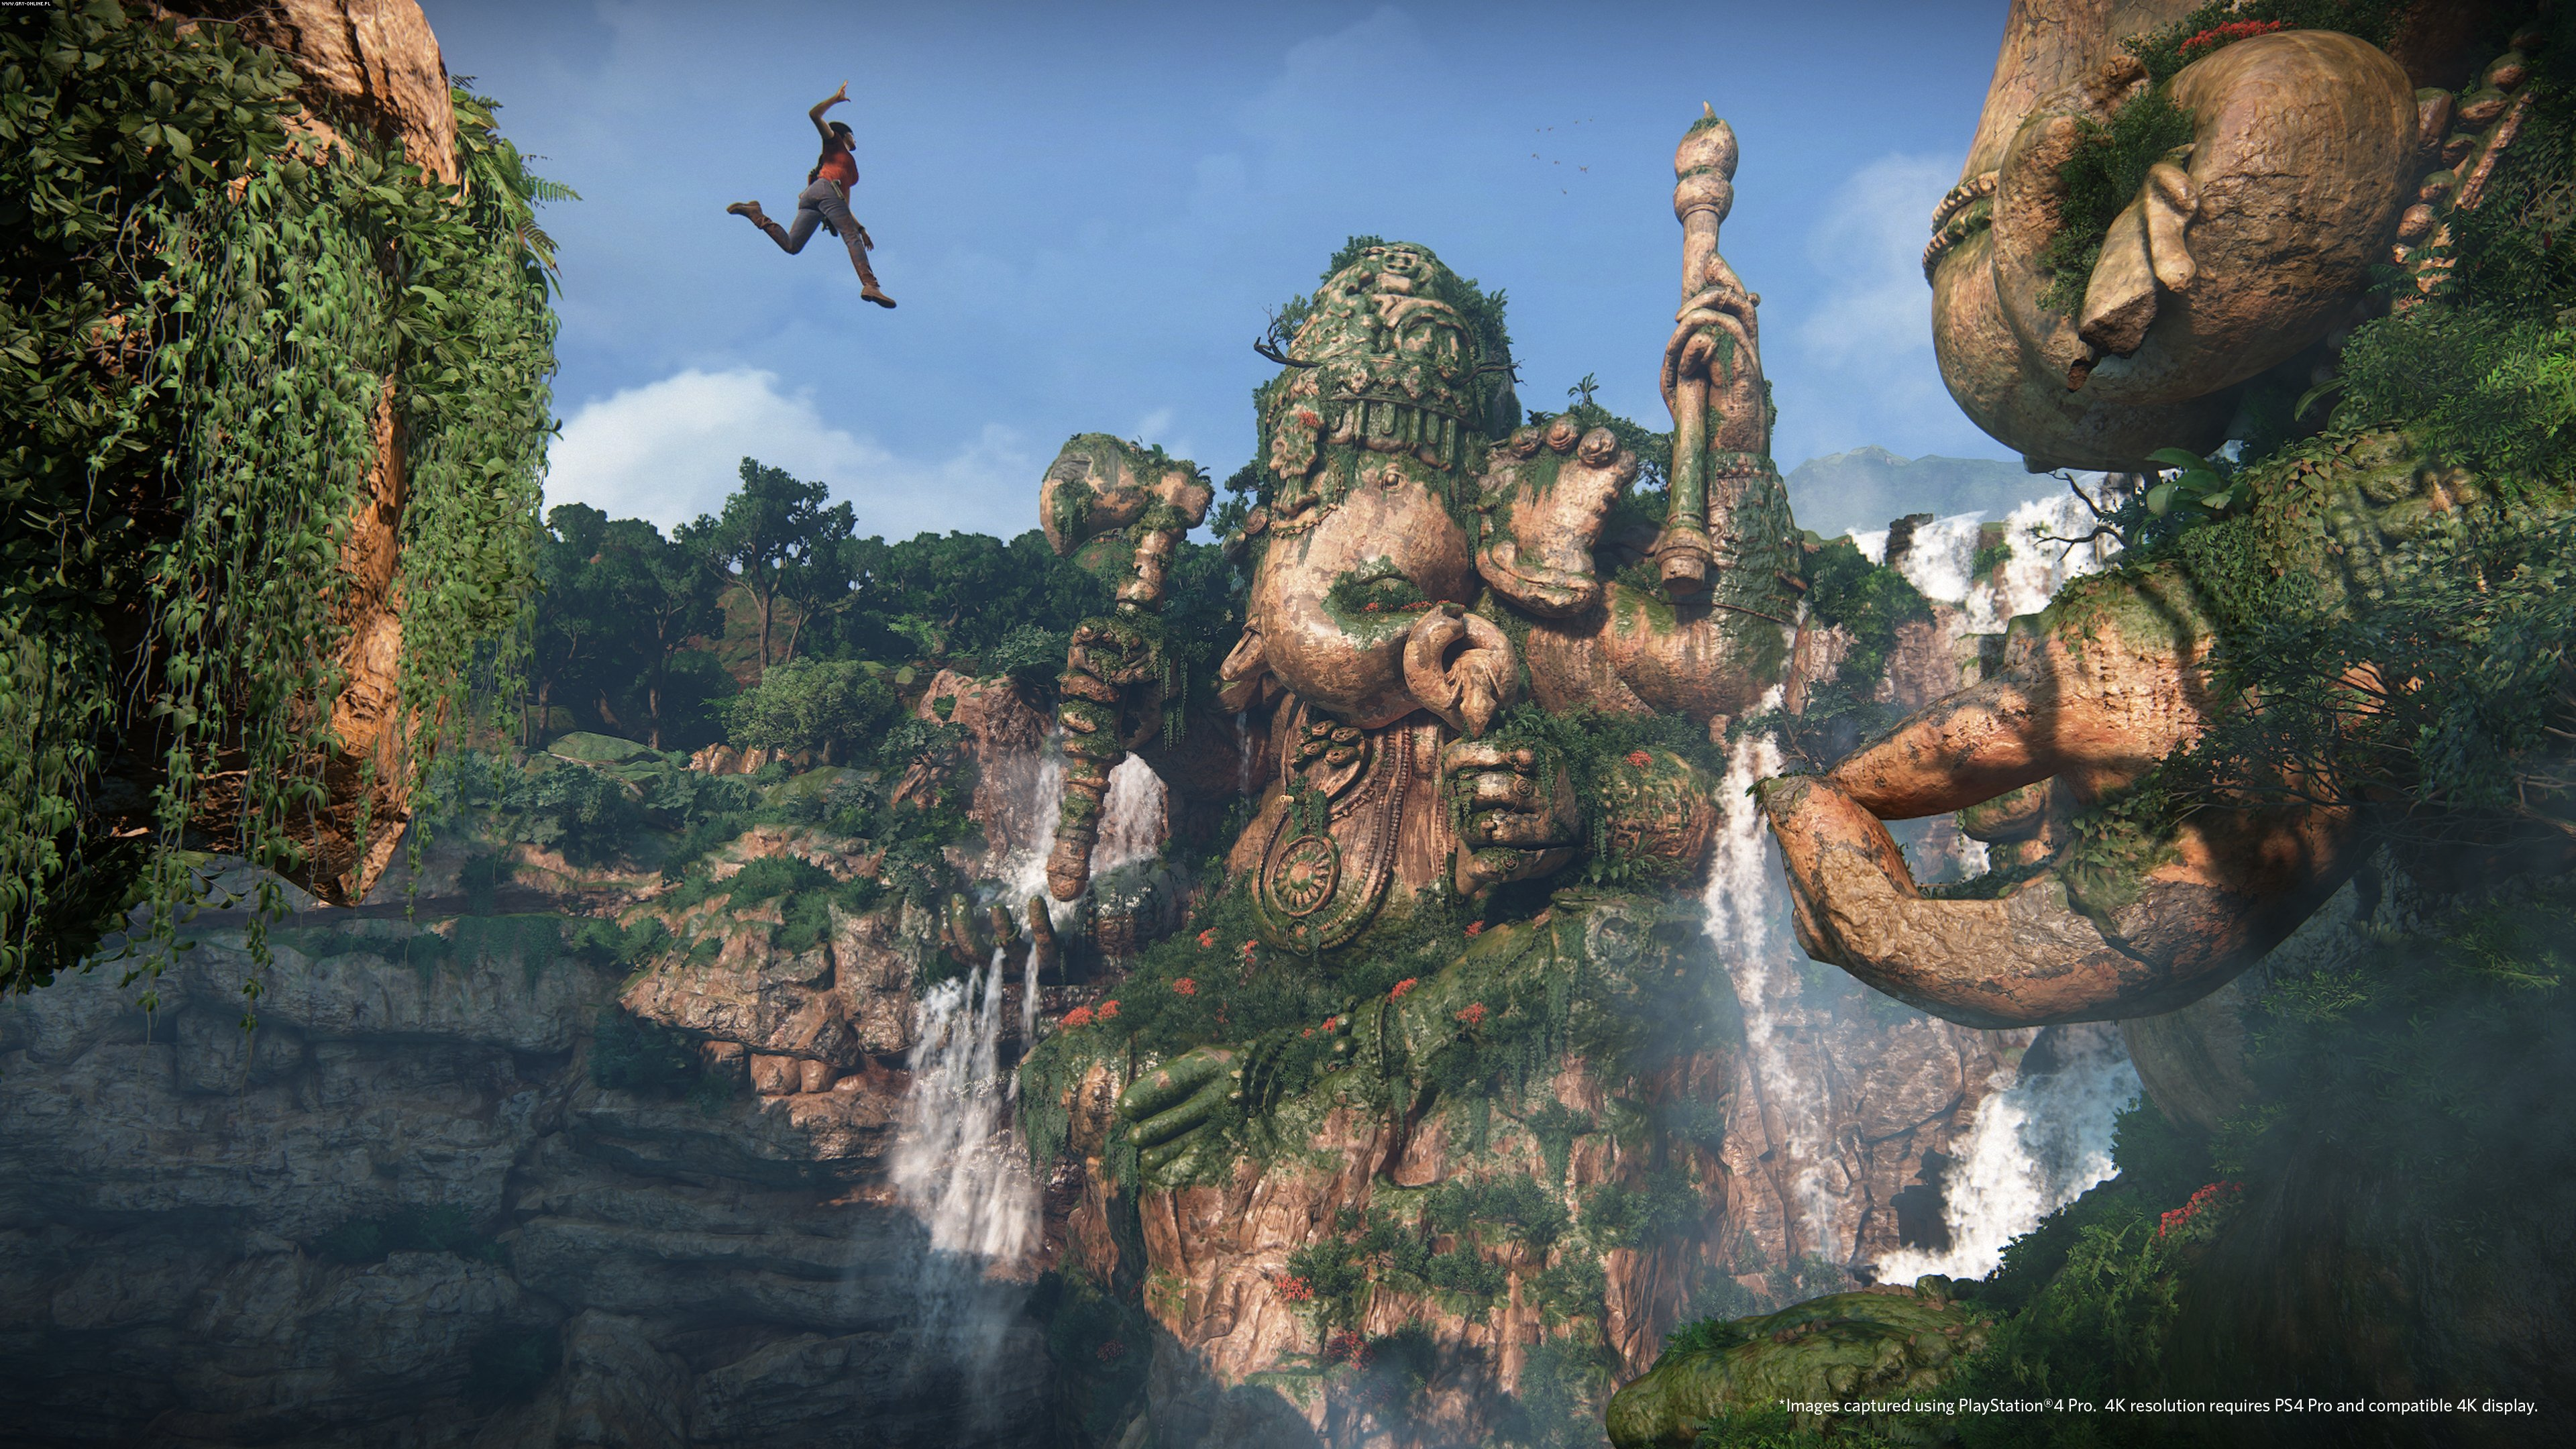 Uncharted: The Lost Legacy PS4 Games Image 16/29, Naughty Dog, Sony Interactive Entertainment